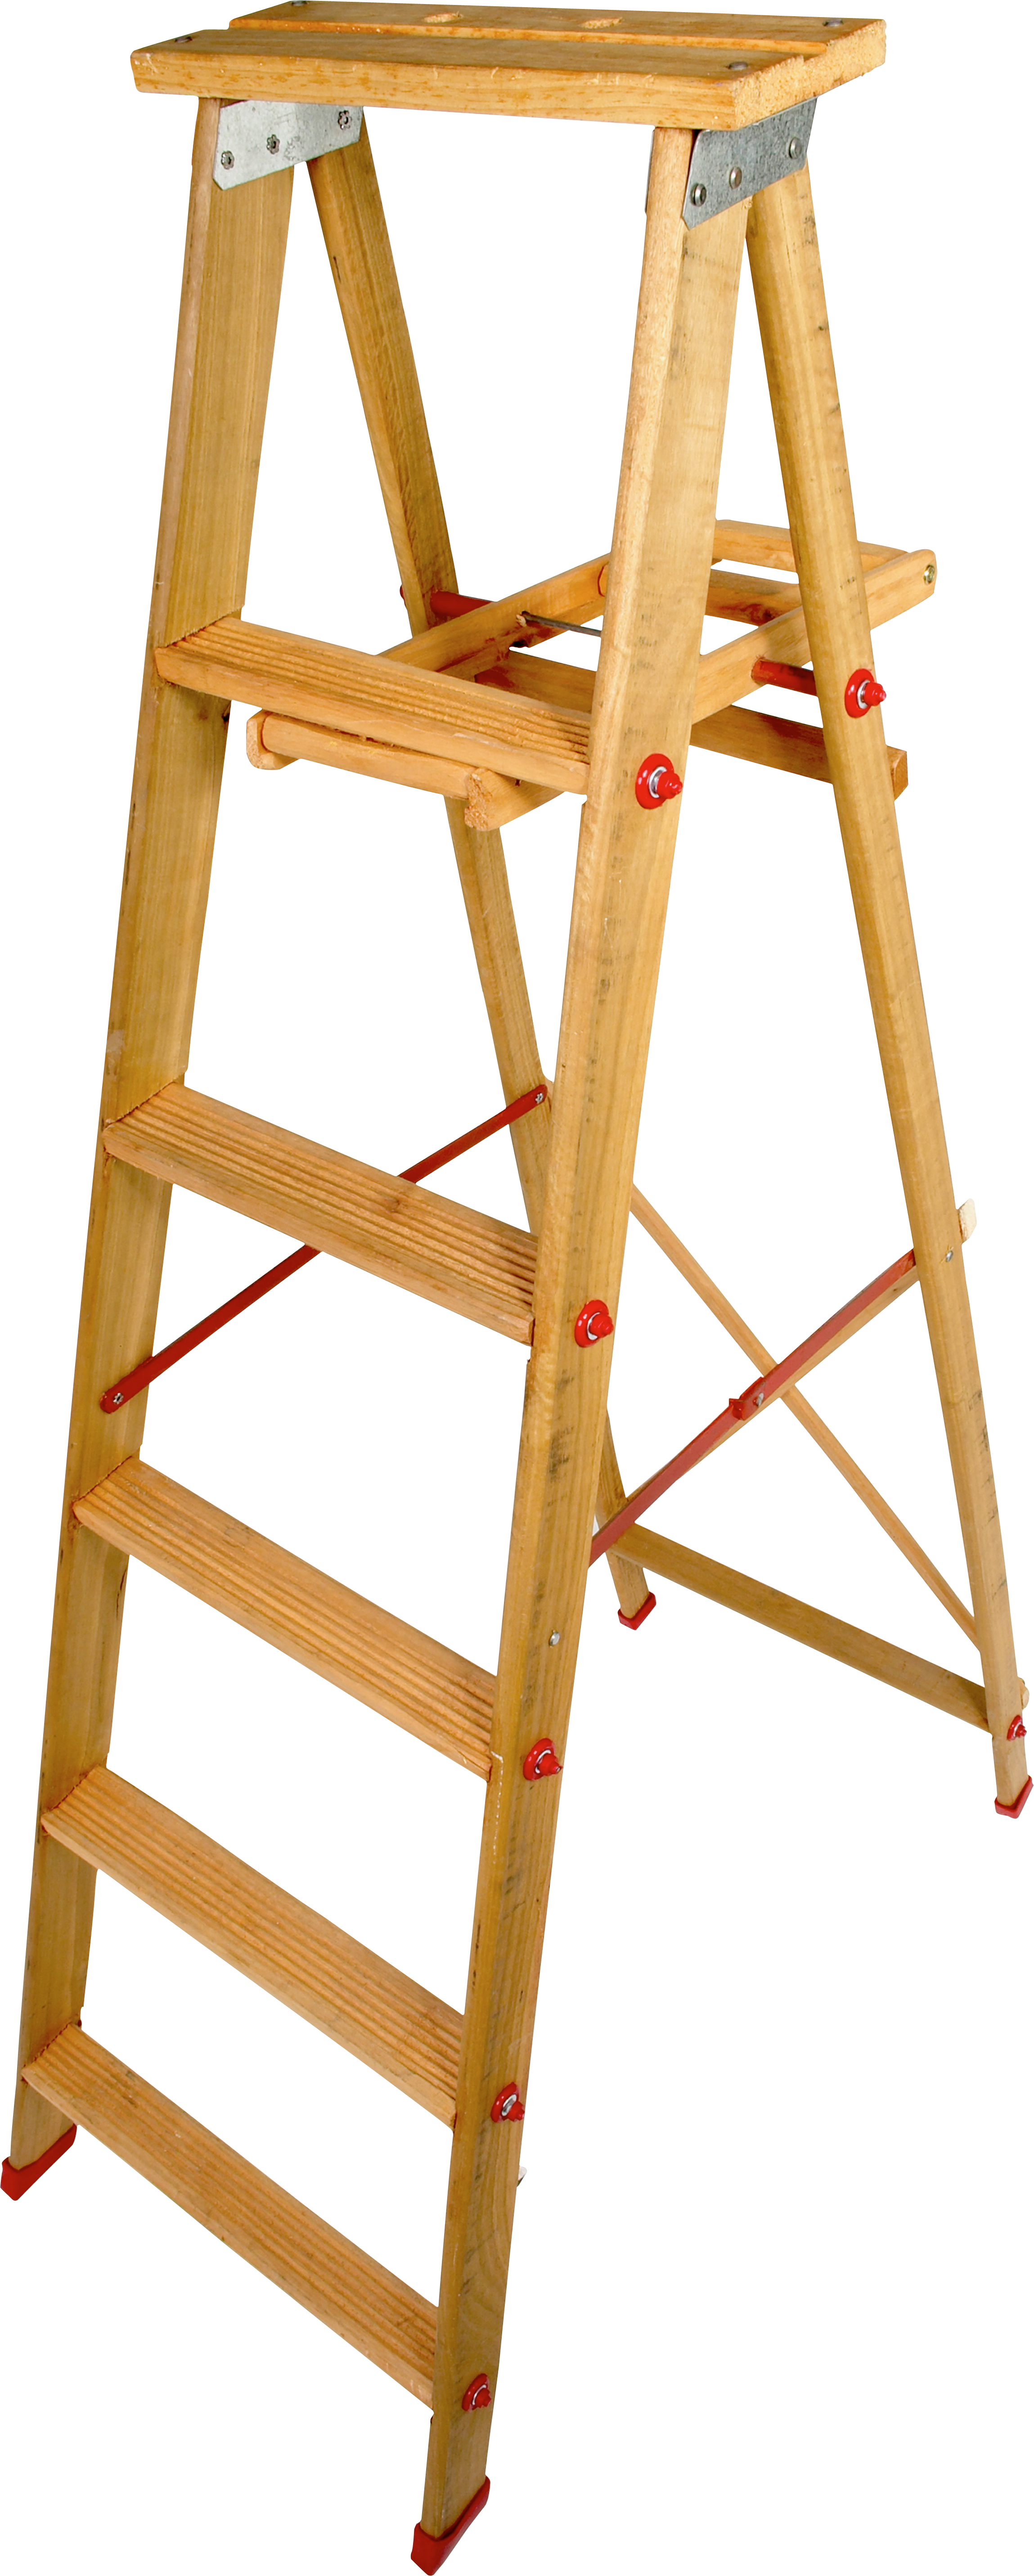 Step ladder png. Images free download wood